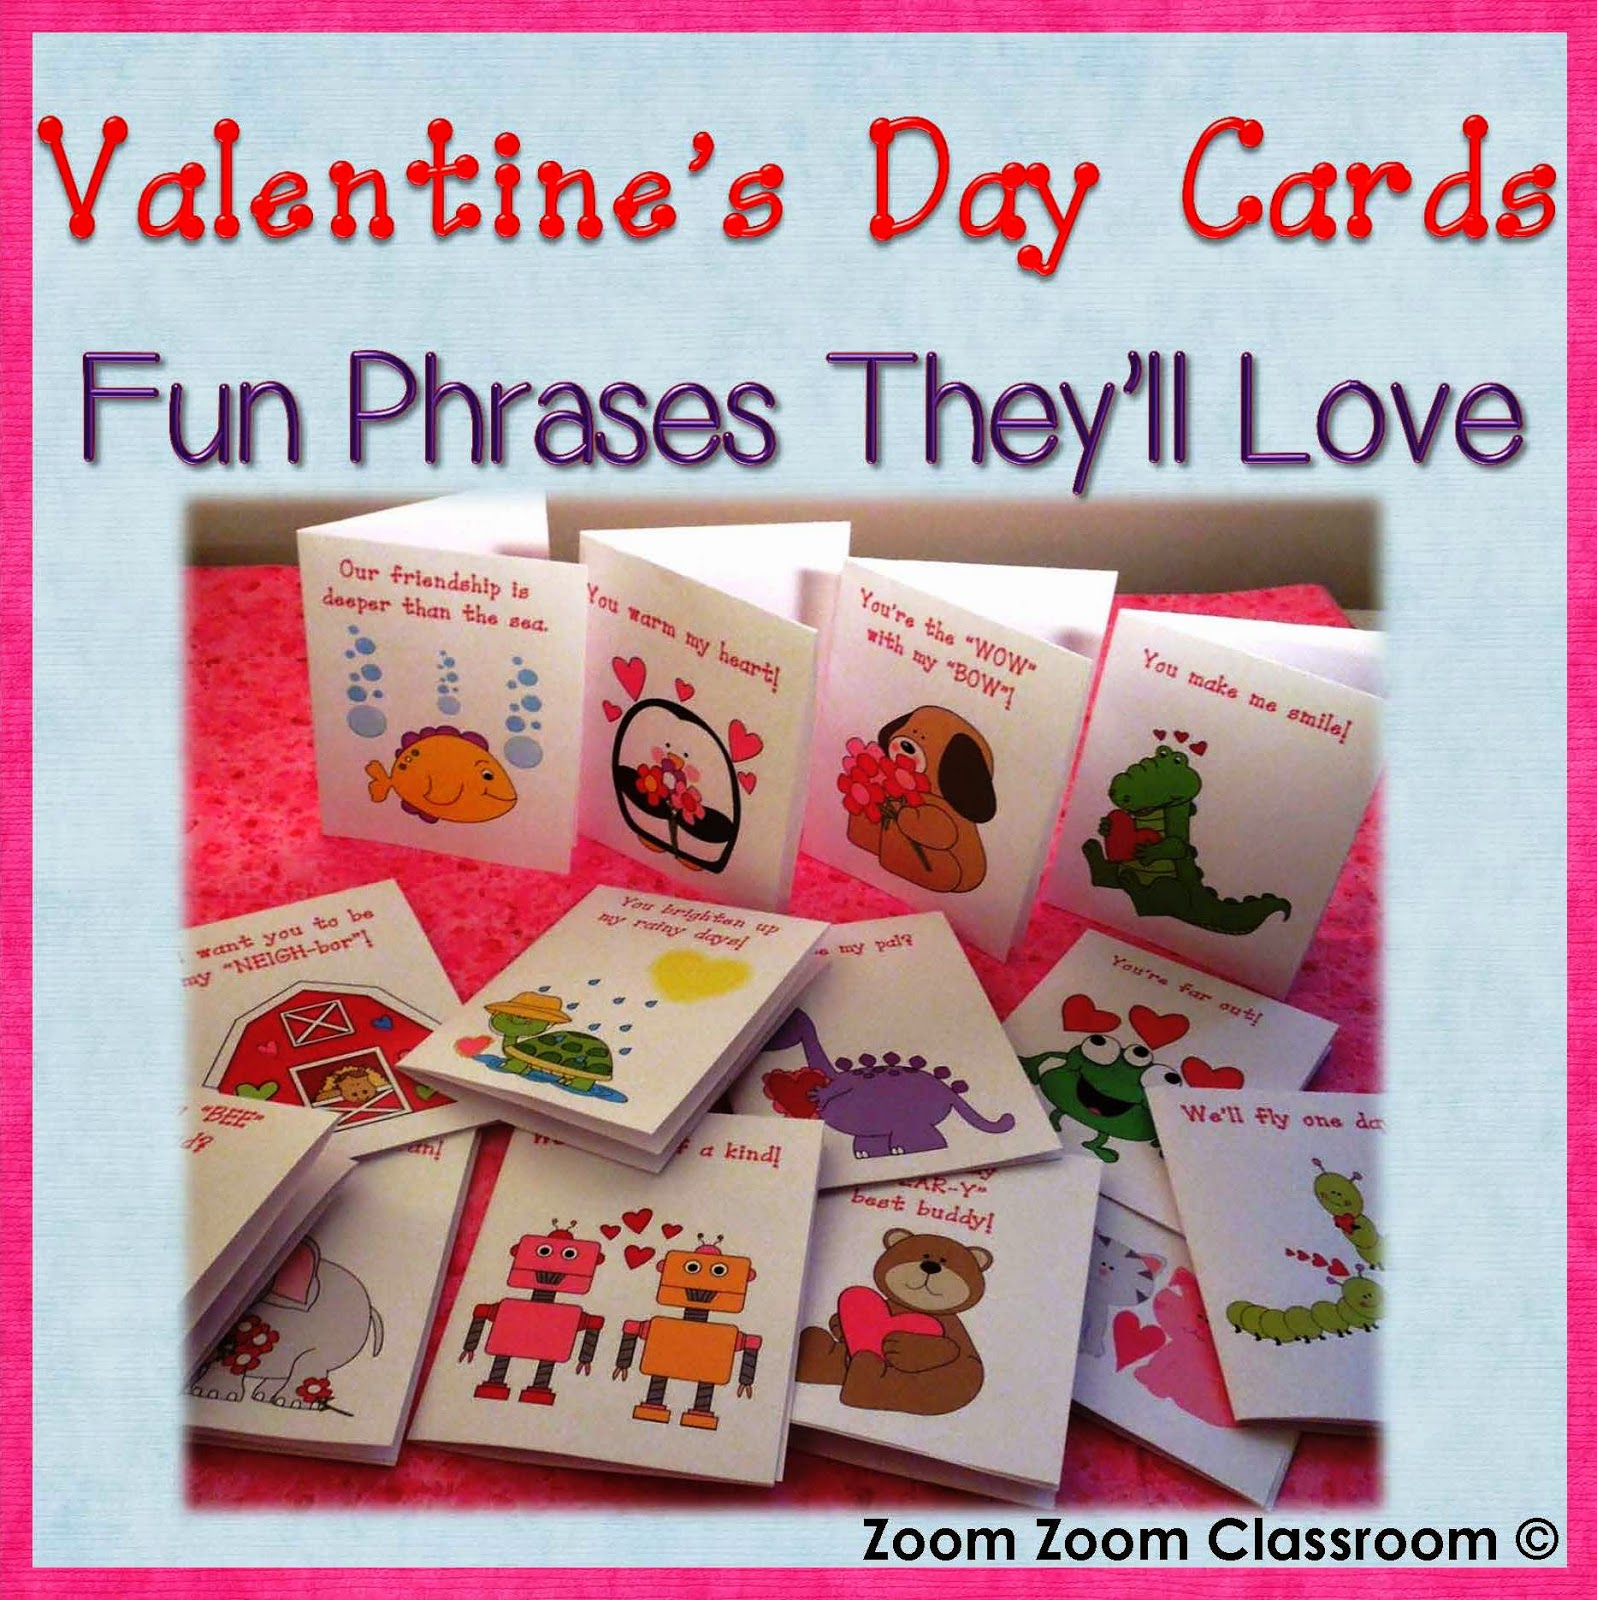 https://www.teacherspayteachers.com/Product/valentine-cards-531416